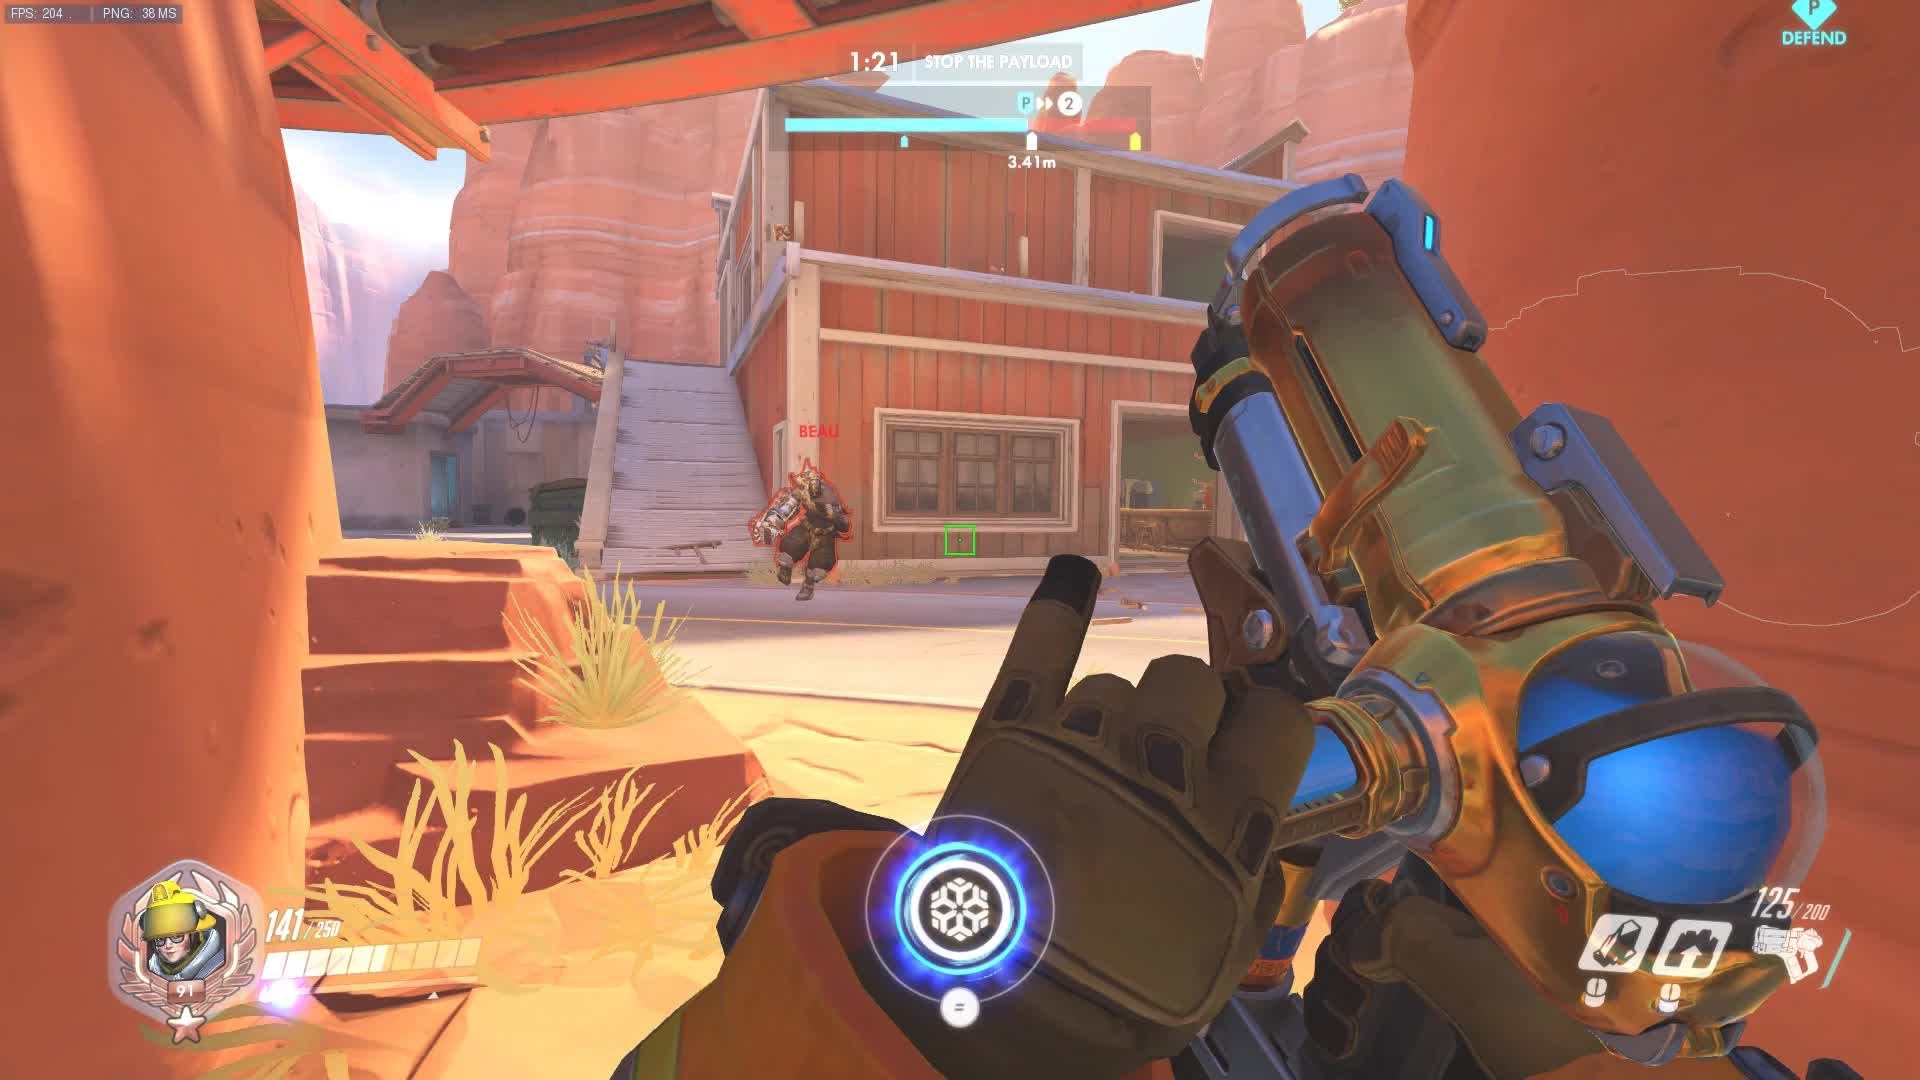 ▷ Sombra Dynamic Square Crosshair (Boxhair) - Overwatch GIF by